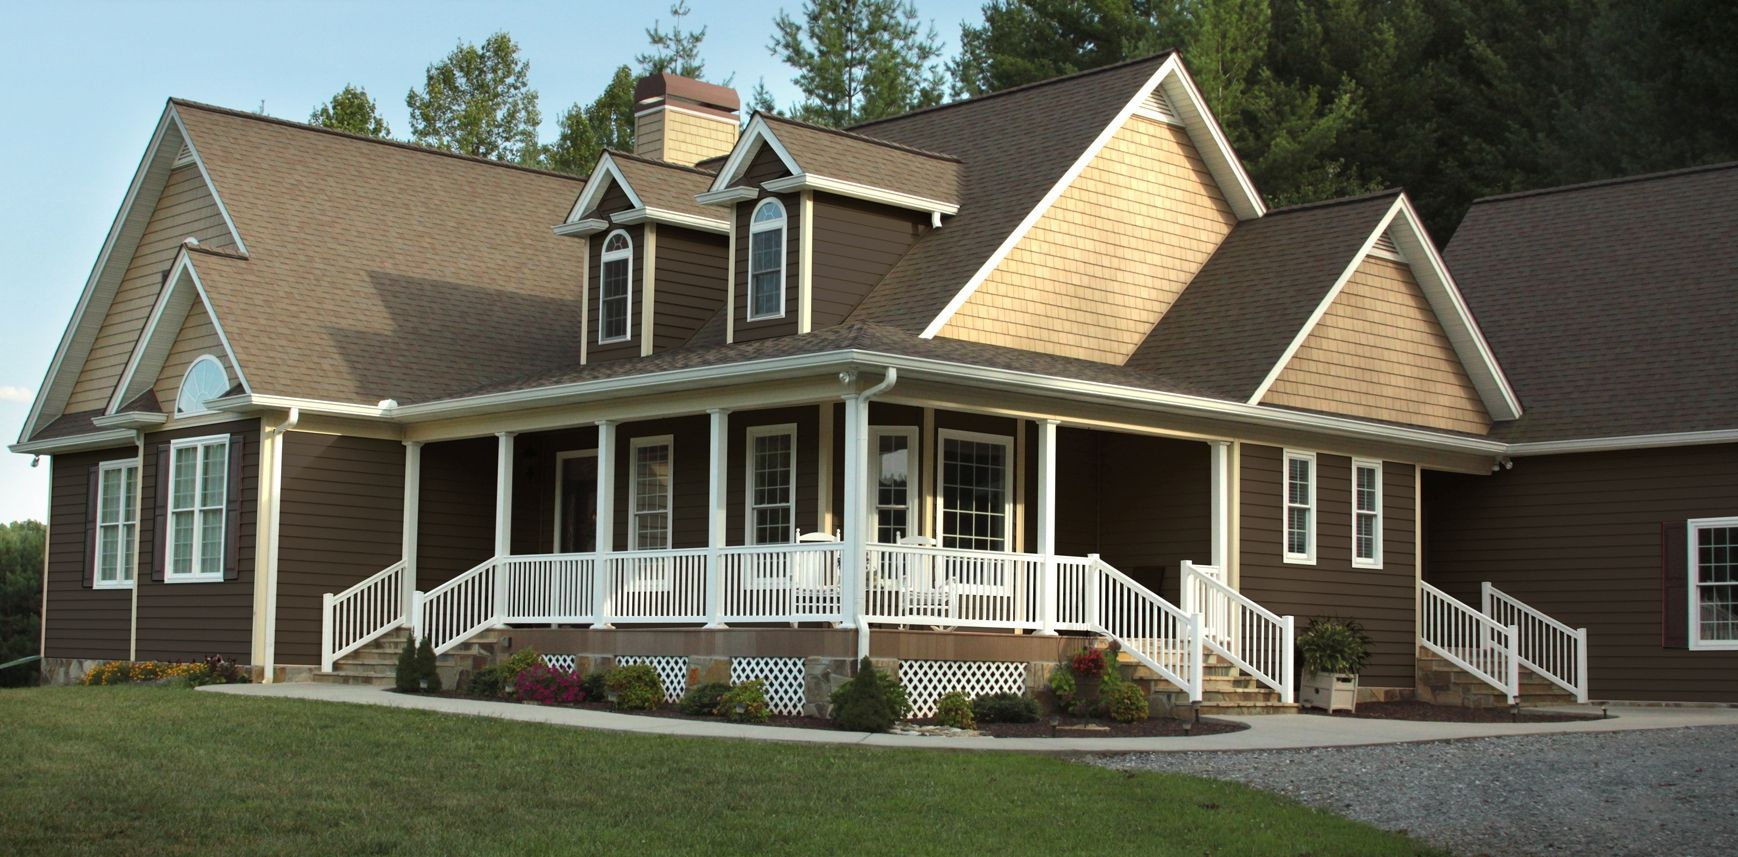 Houses with brown siding house vinyl siding options for Vinyl siding colors on houses